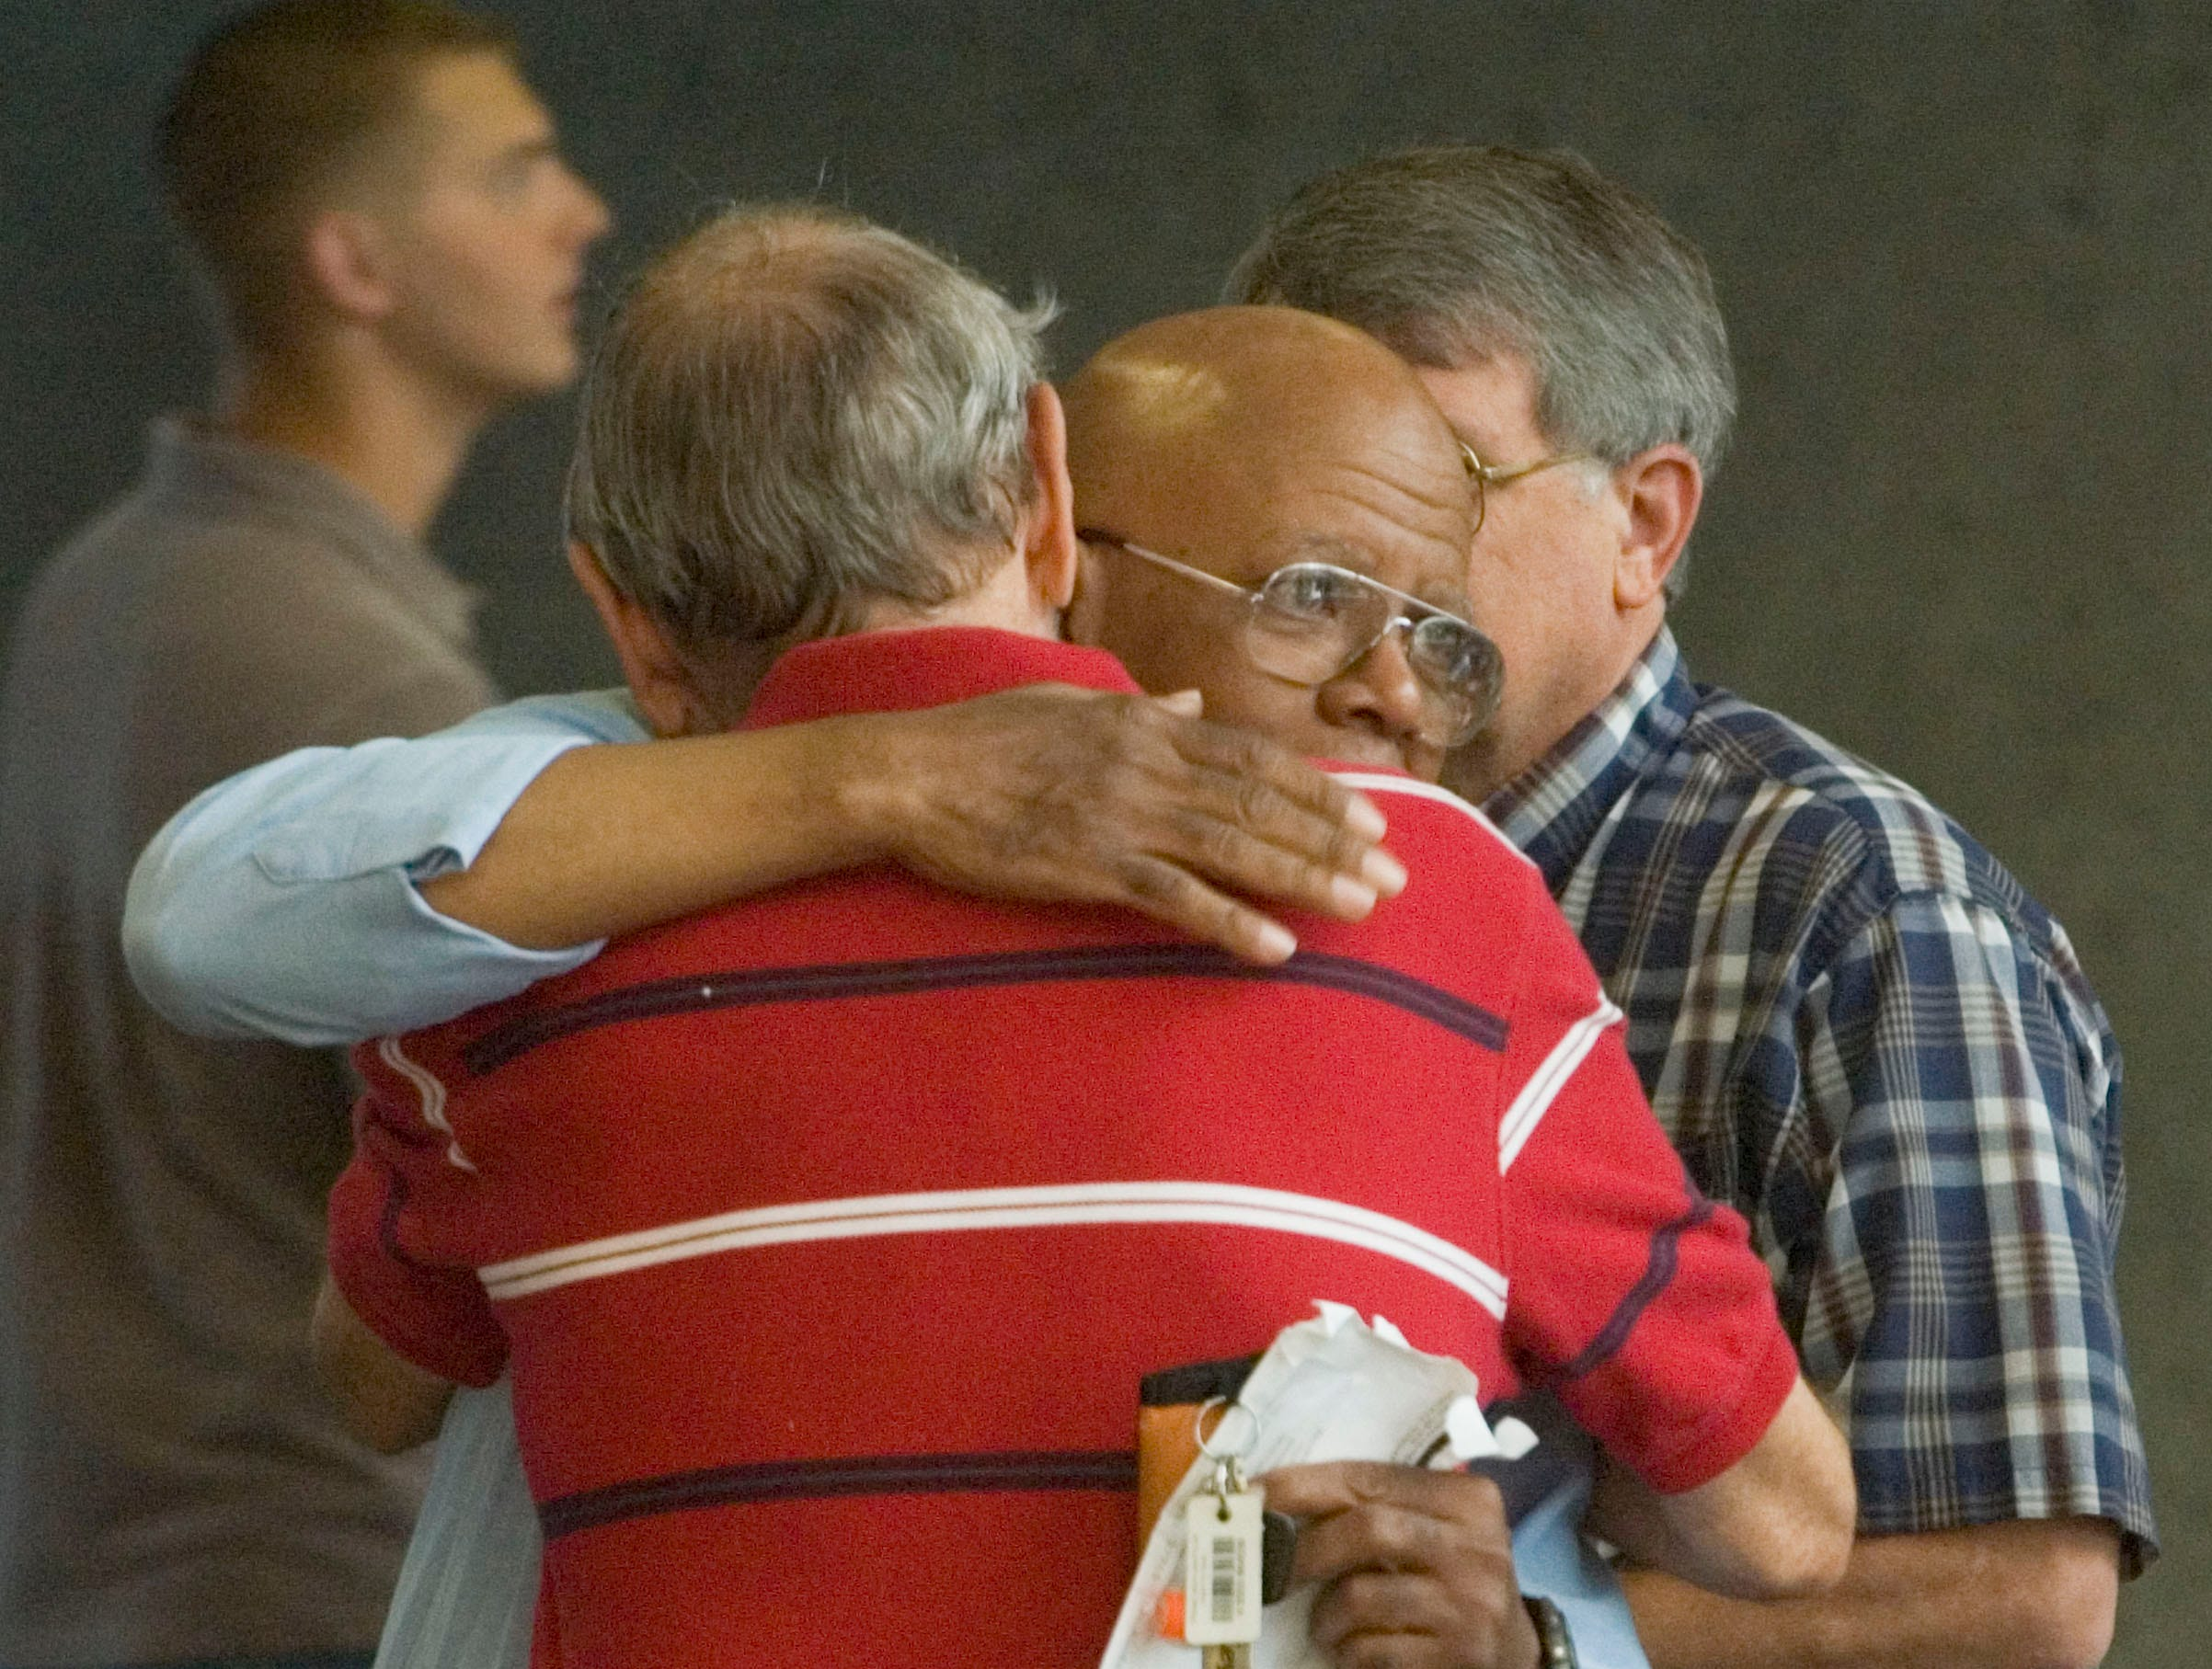 Carl Buice, back to camera, father of Rev. Chris Buice from Tennessee Valley Unitarian Universalist Church, hugs church member Arthur Bolds after a preliminary hearing for the alleged church gunman Wednesday in Knox County General Sessions Court.  Jim David Adkisson, 58, made his first court appearance in connection with the July 27 fatal shooting at Tennessee Valley Unitarian Universalist Church.